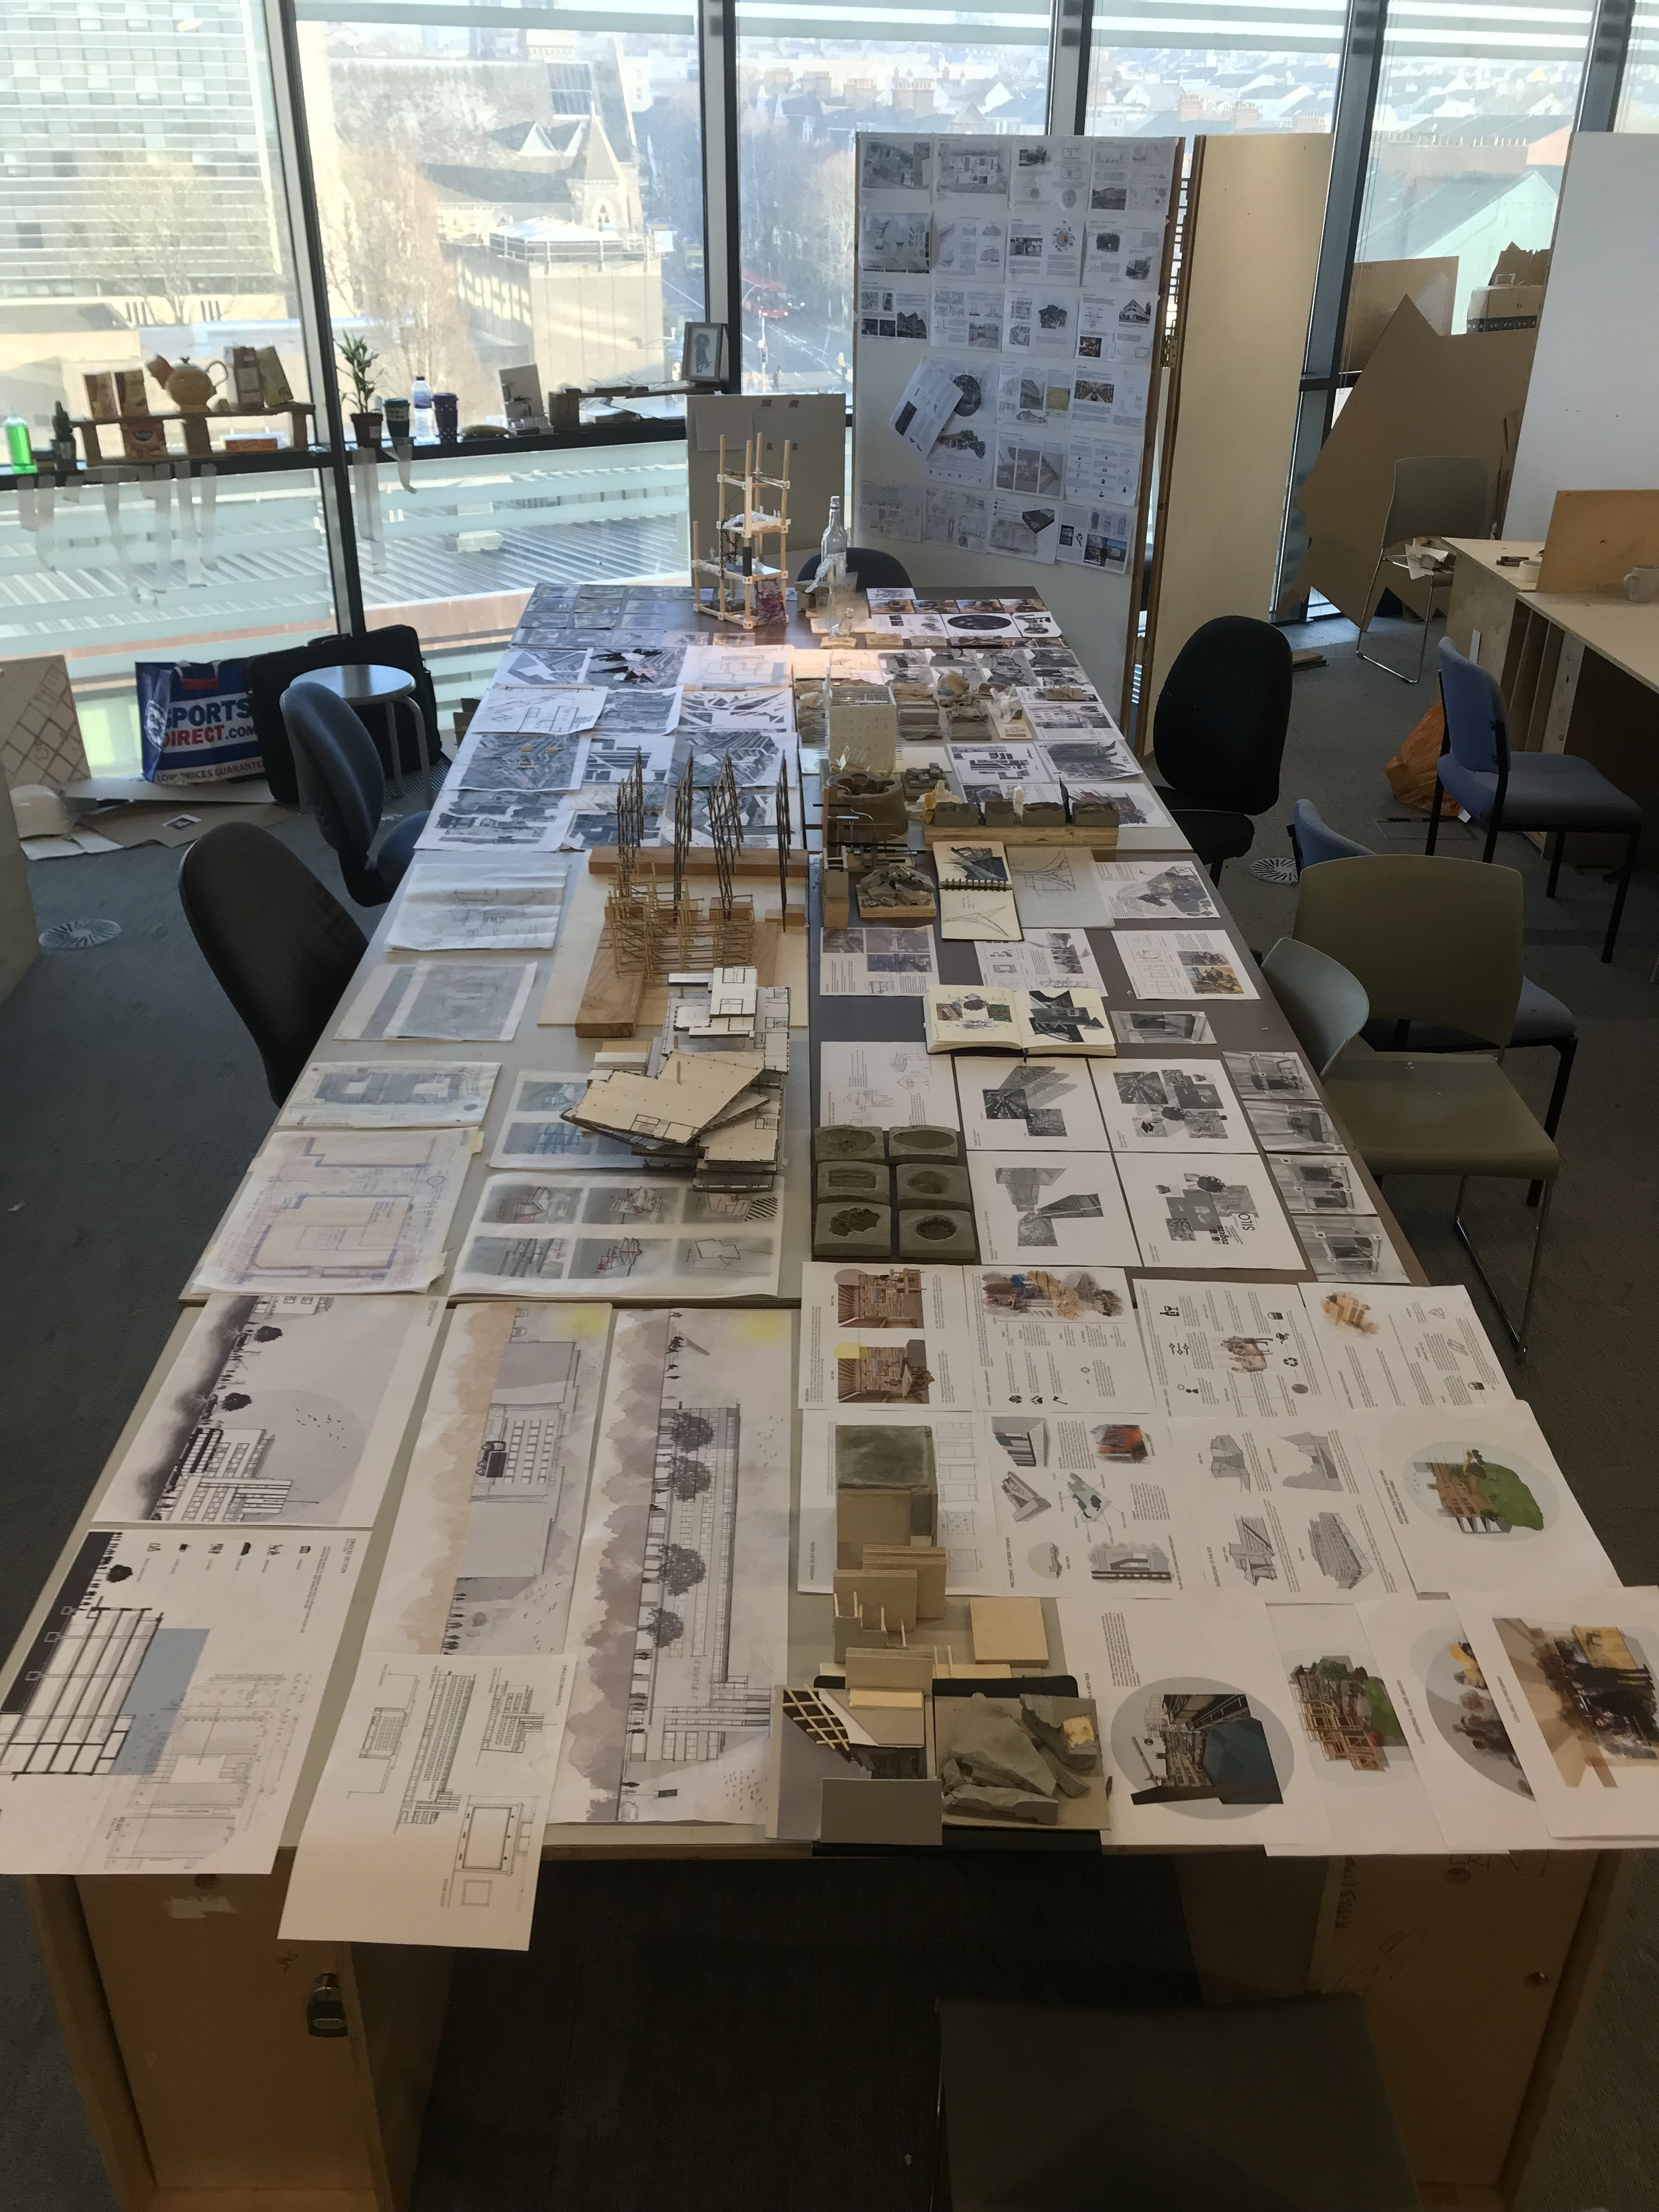 Our groupwork laid out in the studio for Interim Review 1